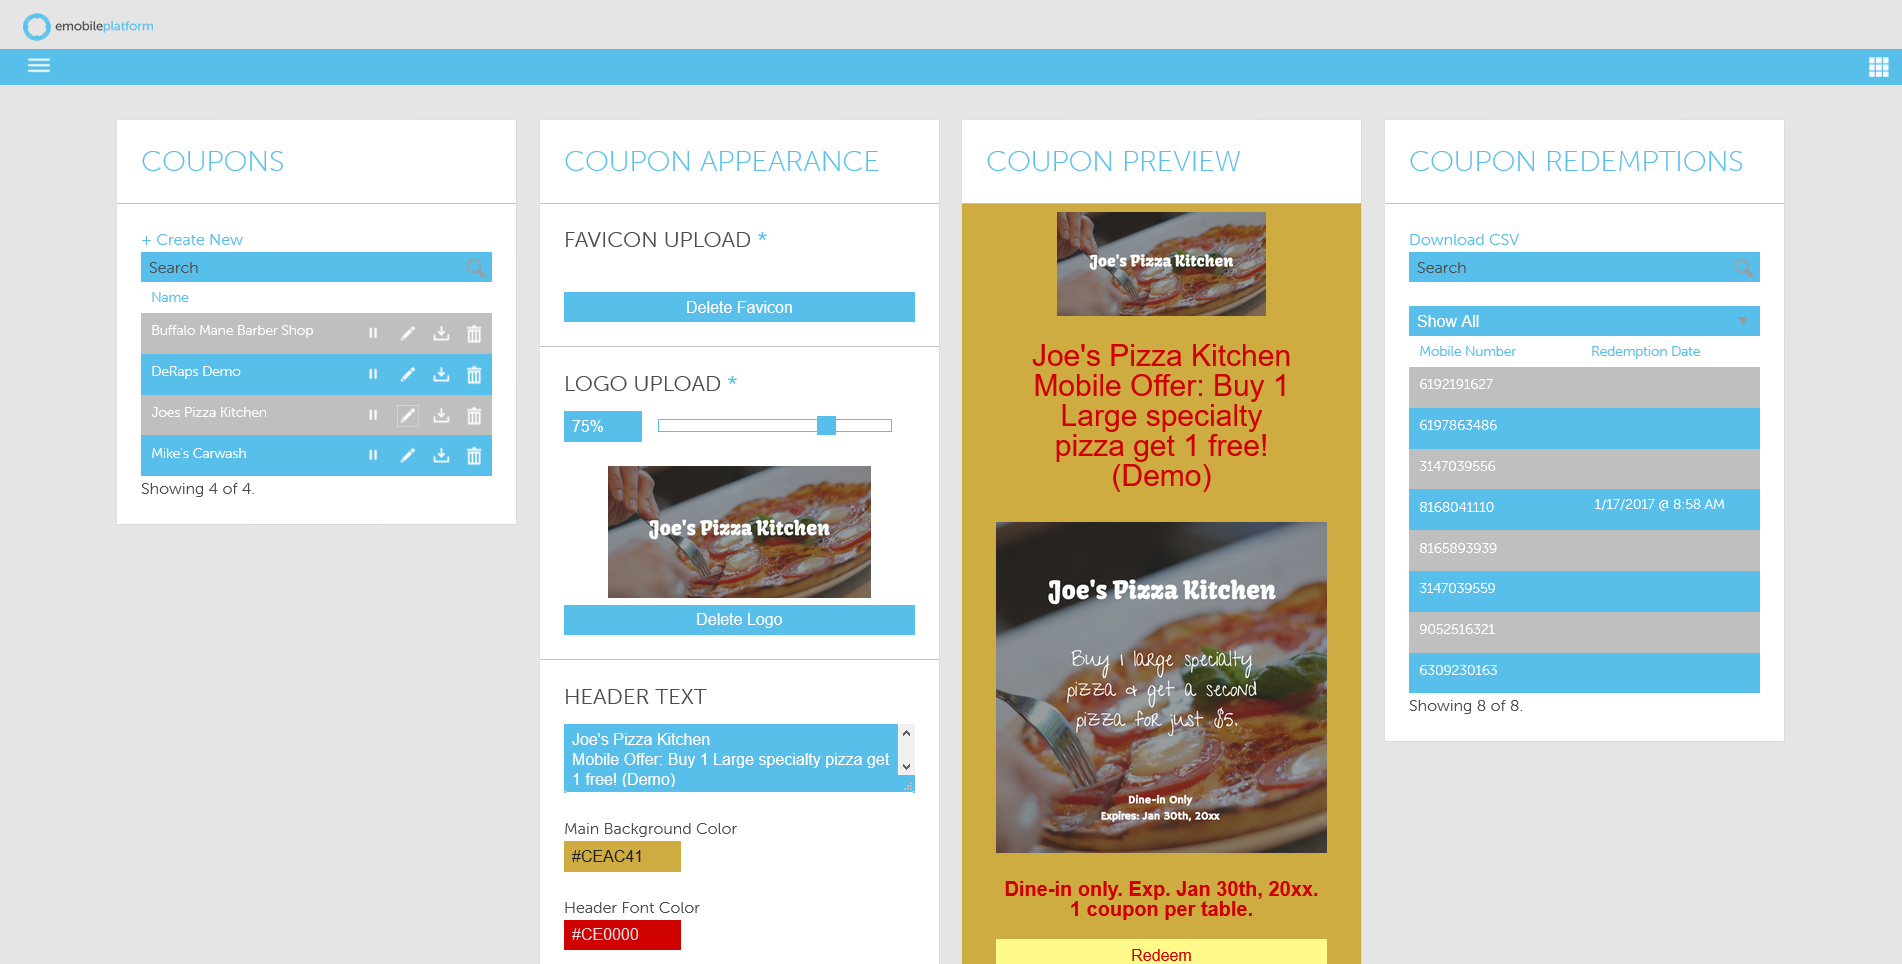 Building mobile coupons with the AvidMobile Mobile Marketing application